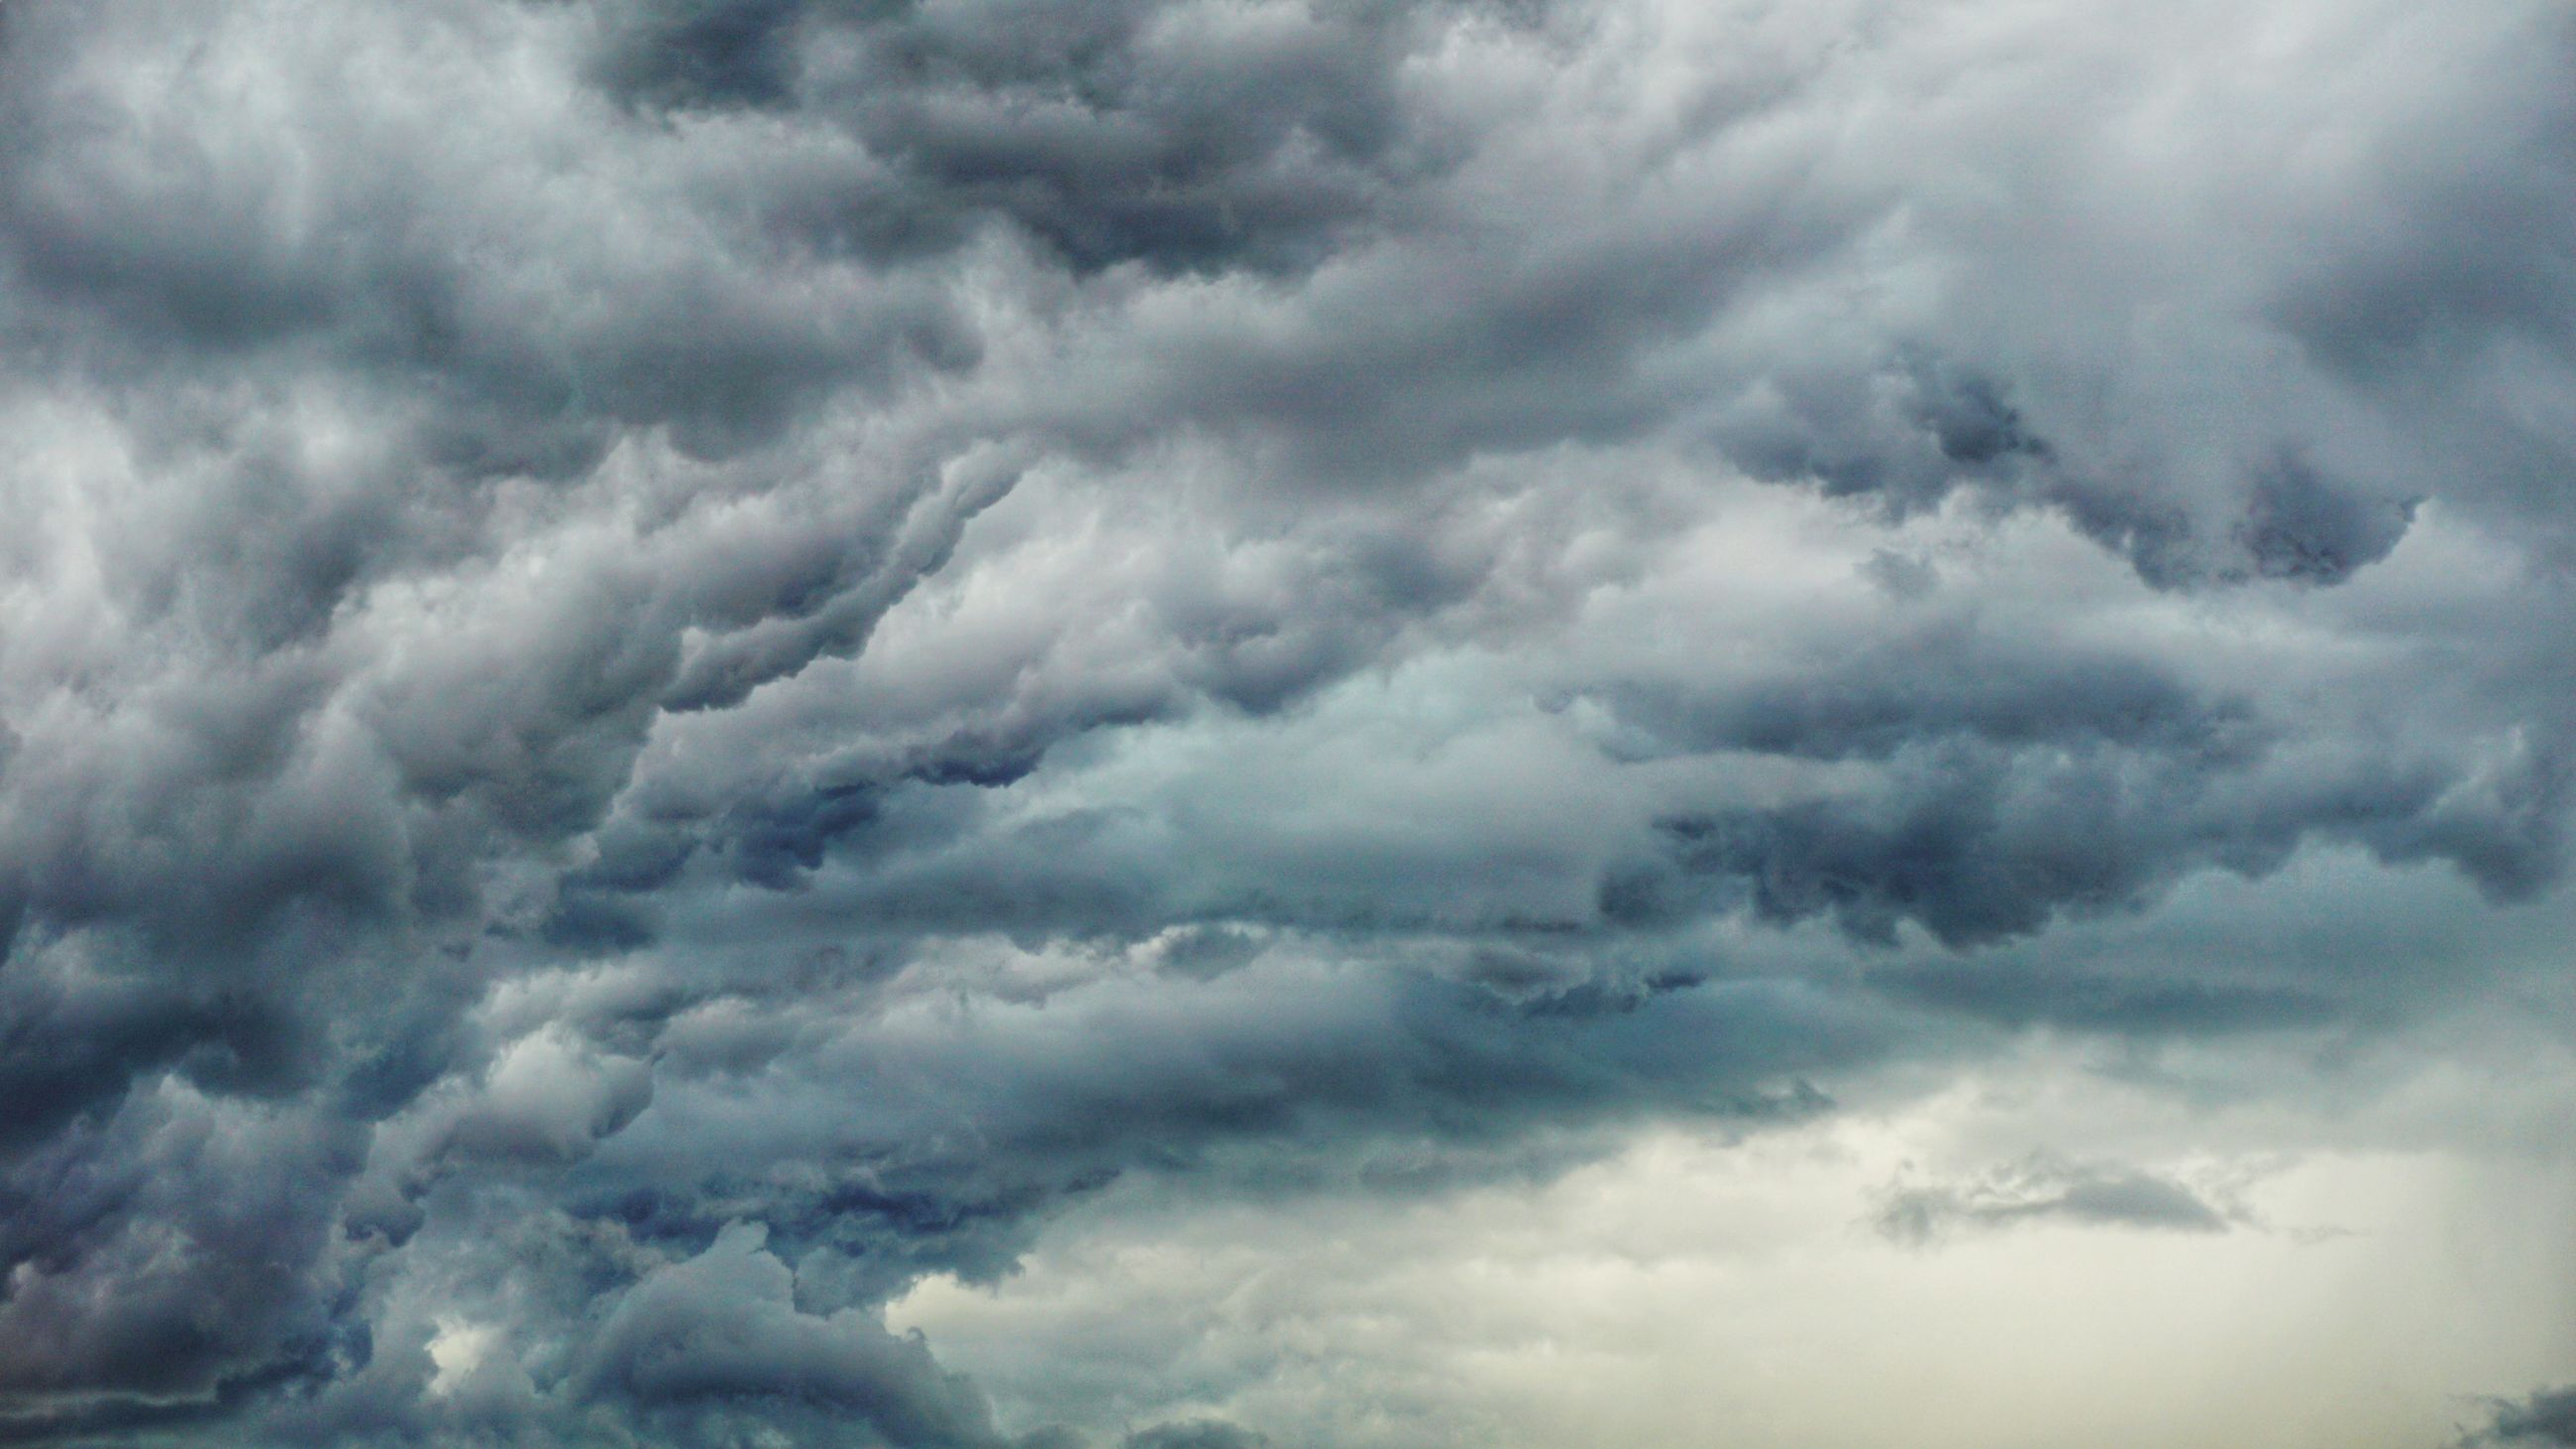 cloud - sky, sky, beauty in nature, low angle view, scenics - nature, no people, storm, nature, overcast, cloudscape, tranquility, backgrounds, dramatic sky, storm cloud, full frame, outdoors, day, tranquil scene, idyllic, meteorology, ominous